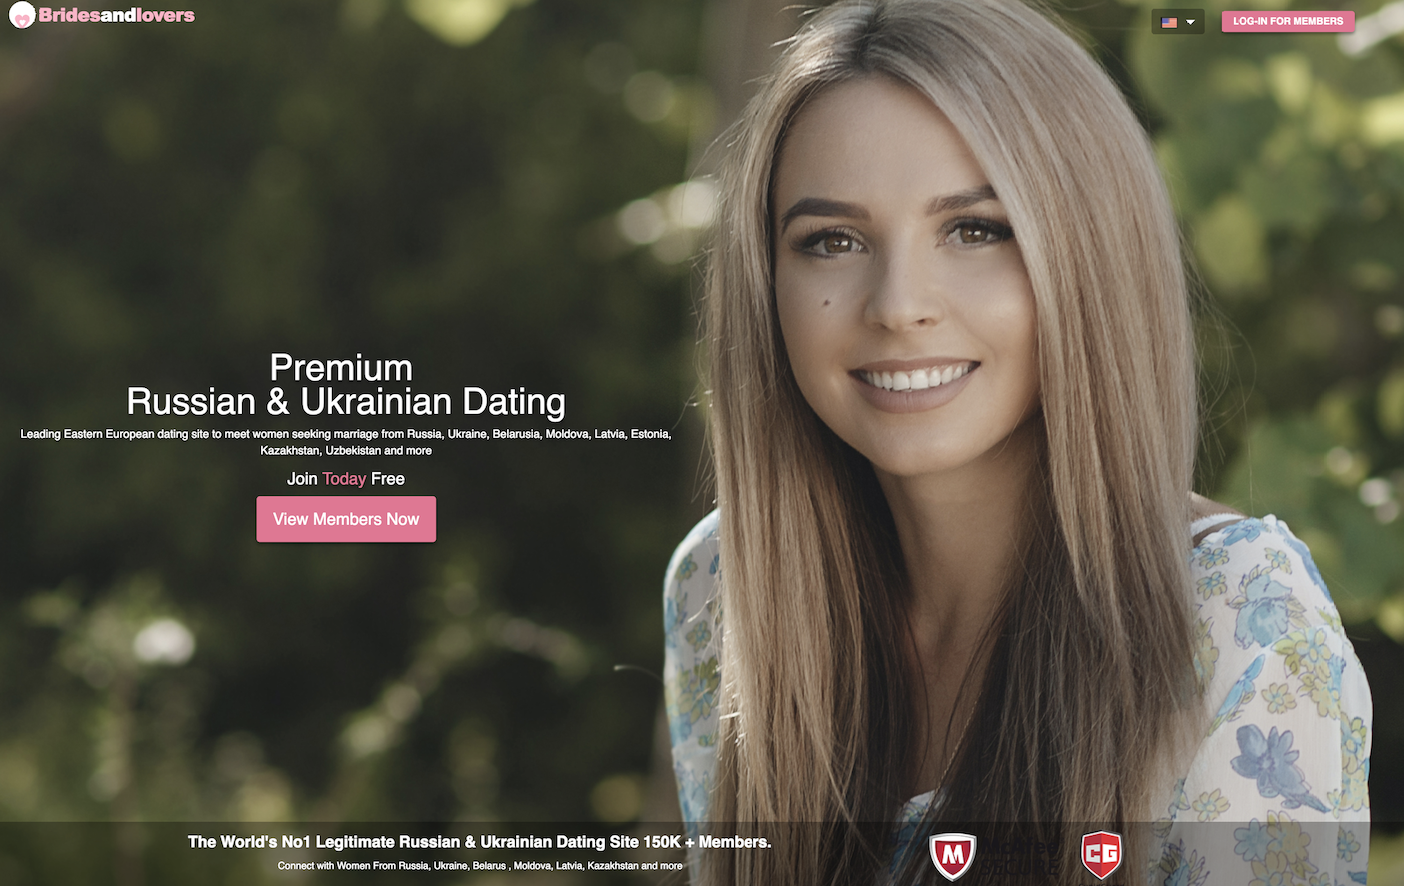 Free dating european sites updating security policies